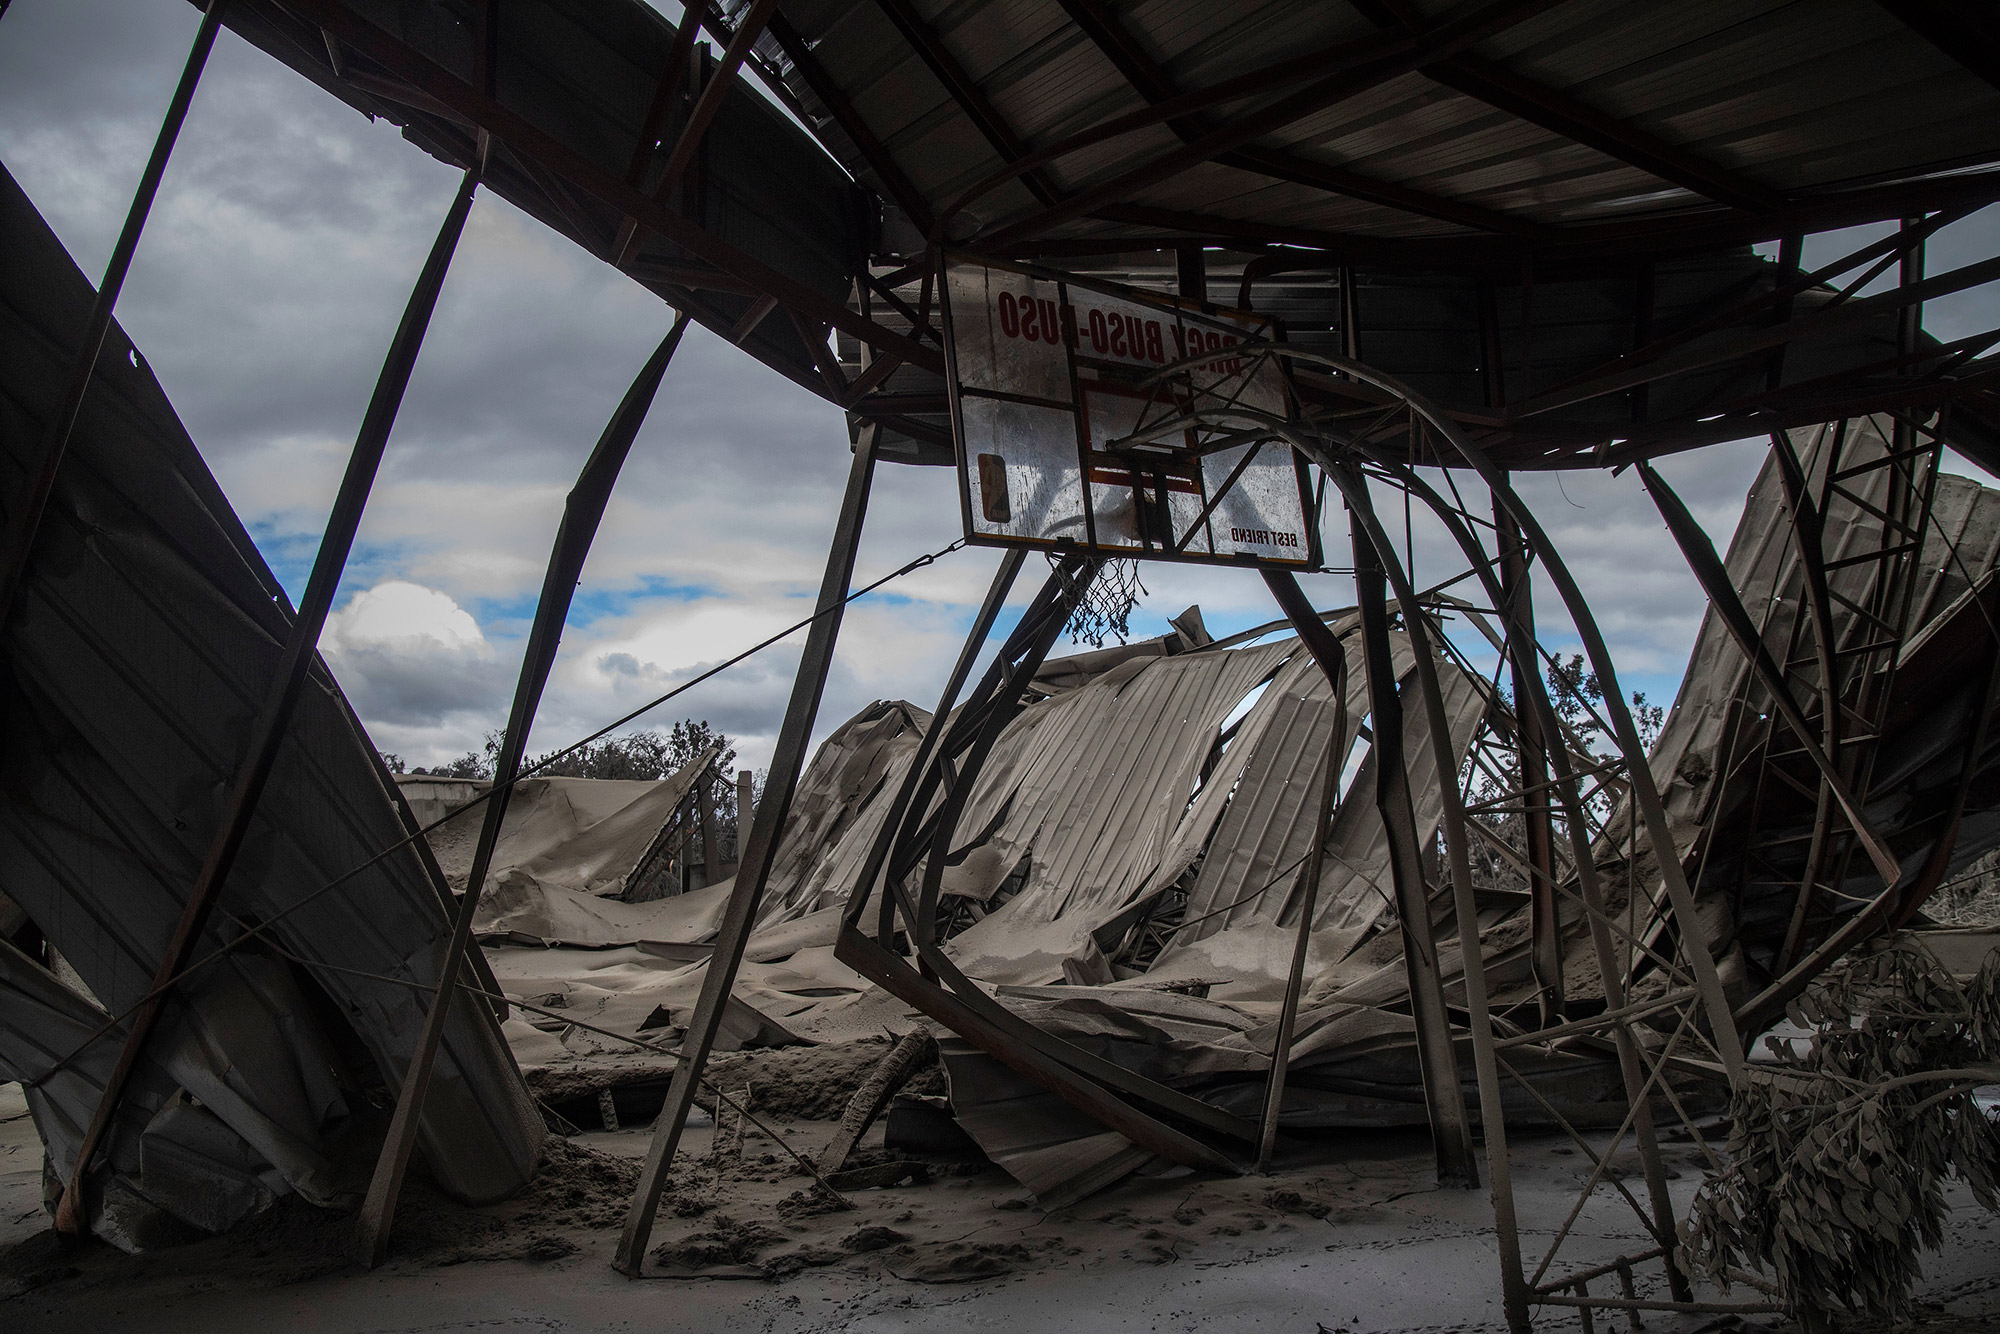 LAUREL, PHILIPPINES - JANUARY 14: The roof a basketball gymnasium, destroyed by volcanic ash from Taal Volcano's eruption, is seen on January 14, 2020 in Laurel, Batangas province, Philippines. The Philippine Institute of Volcanology and Seismology raised the alert level to four out of five, warning that a hazardous eruption could take place anytime, as authorities have evacuated tens of thousands of people from the area. An estimated $10 million worth of crops and livestock have been damaged by the on-going eruption, according to the country's agriculture department. (Photo by Ezra Acayan/Getty Images)